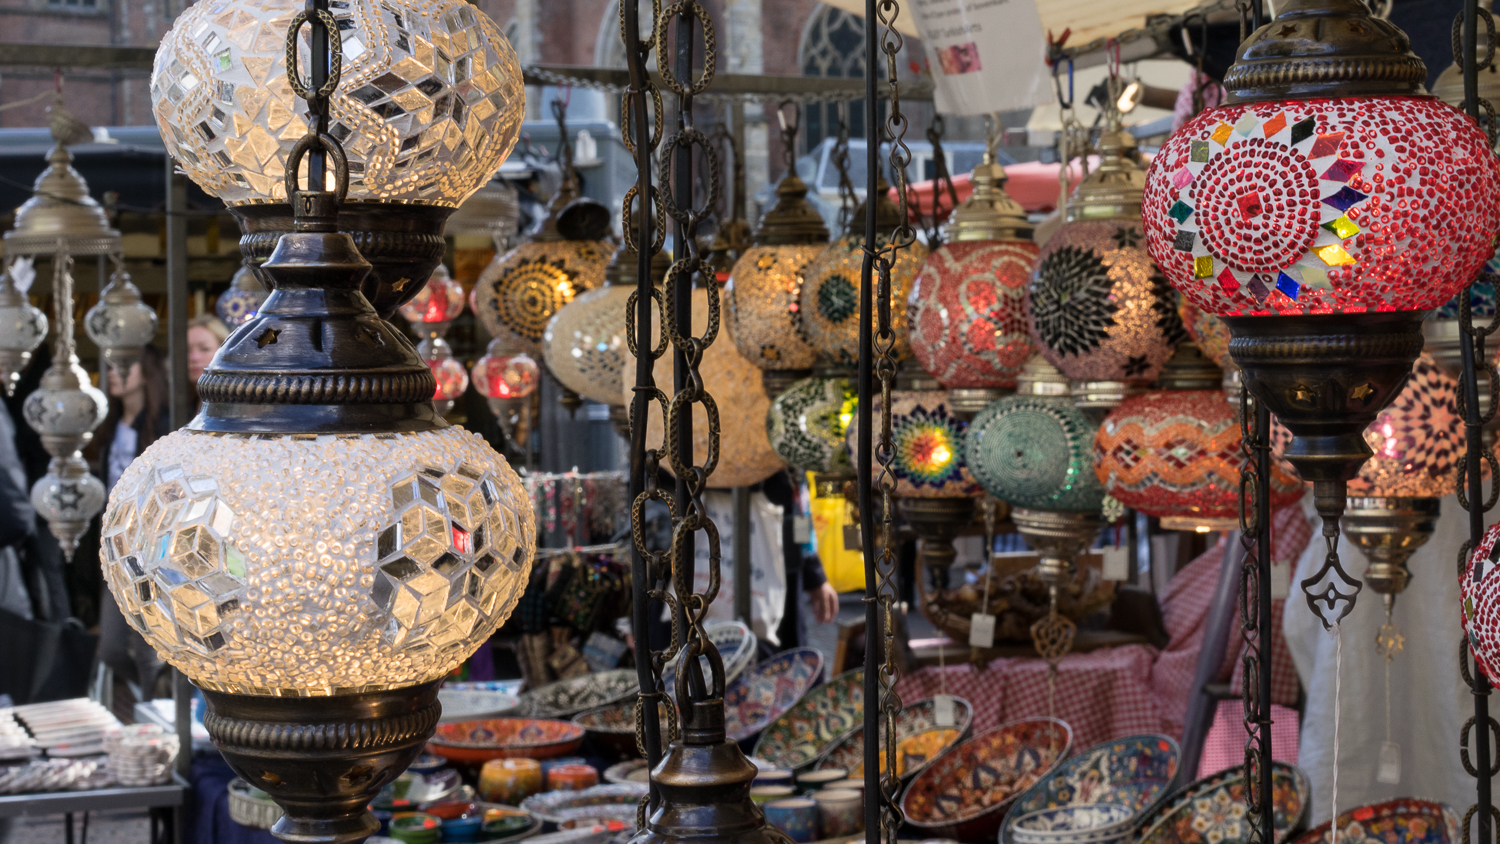 LAMPS FROM THE MARKETS OF HAARLEM, THE NETHERLANDS // MEETYOUTHERE.ME